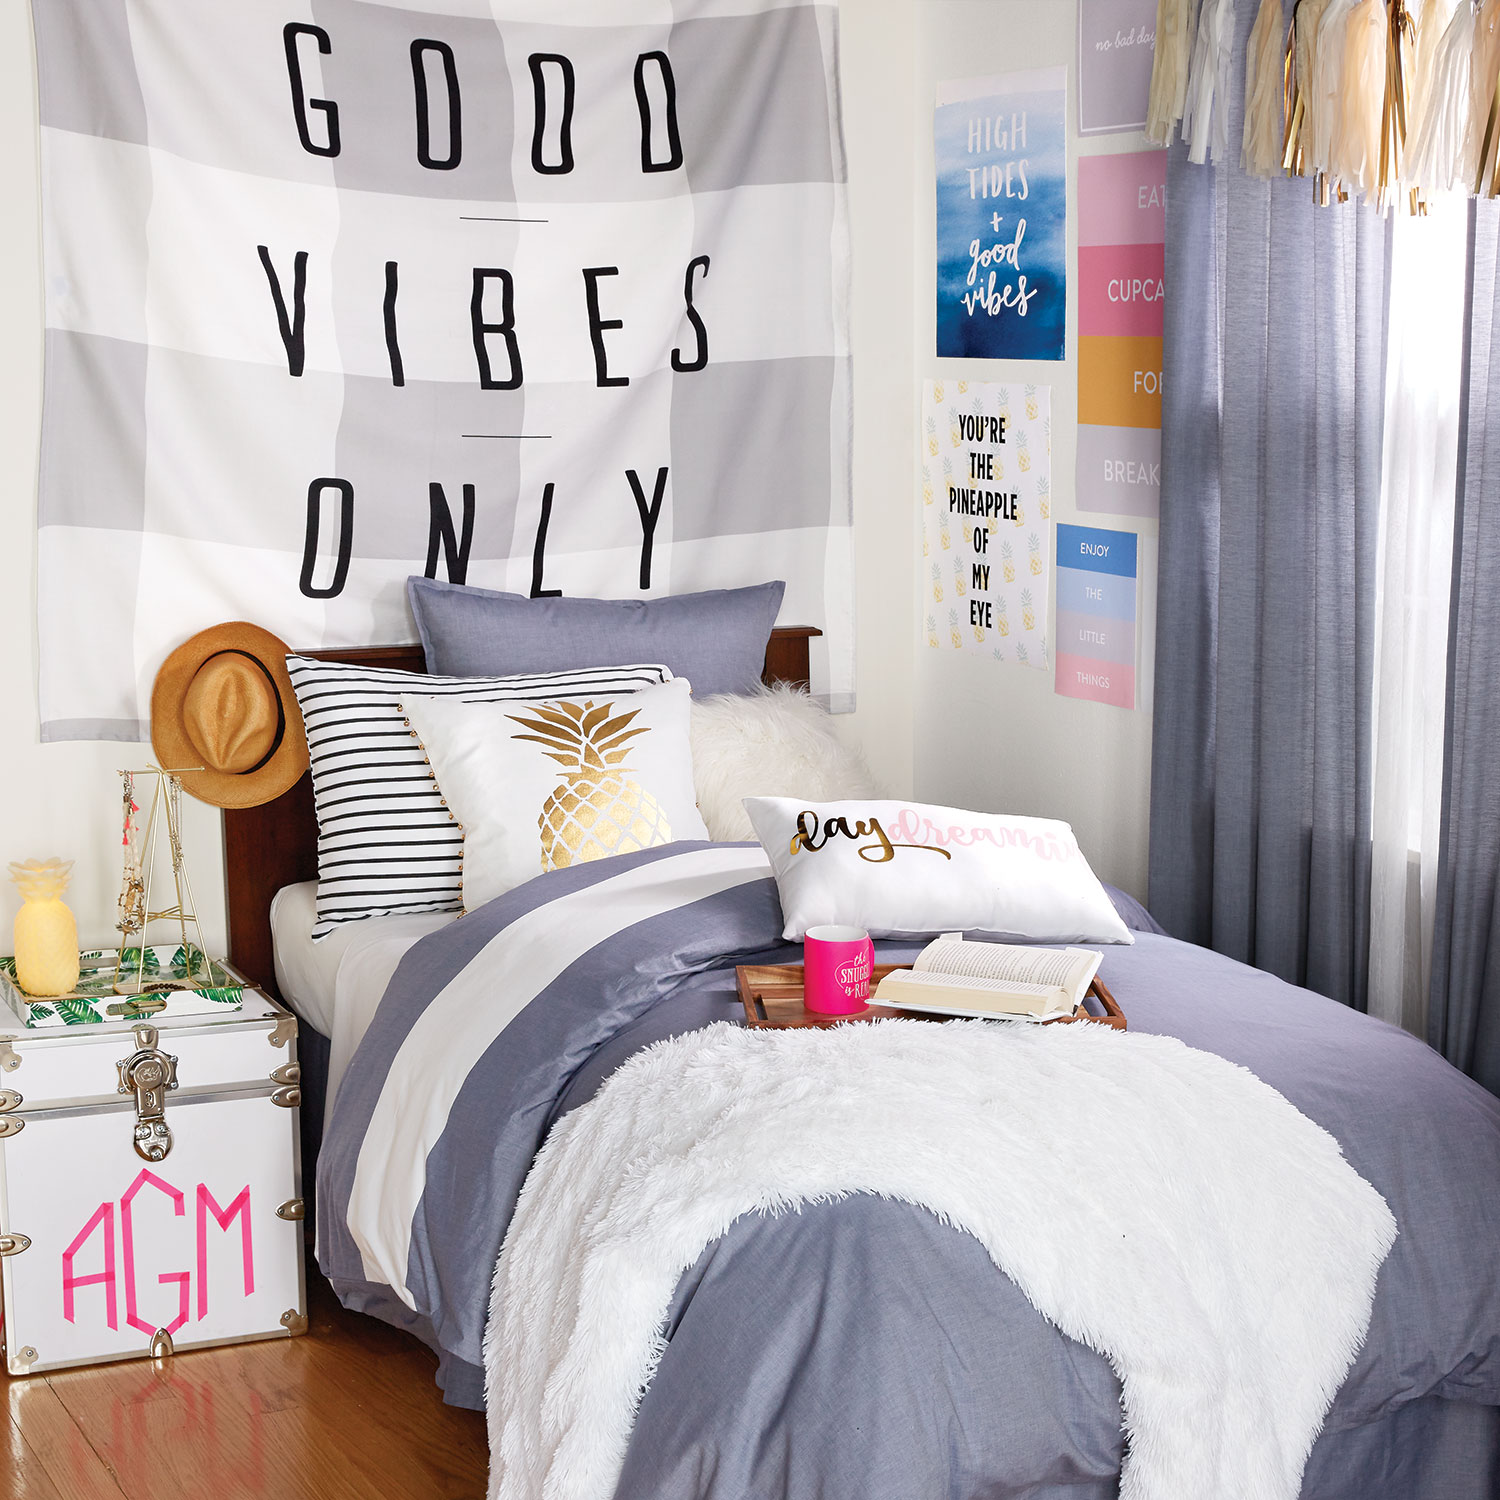 Bedrooms Tumblr 5 Easy Ways To Create A Tumblr Room Now Dormify Blog